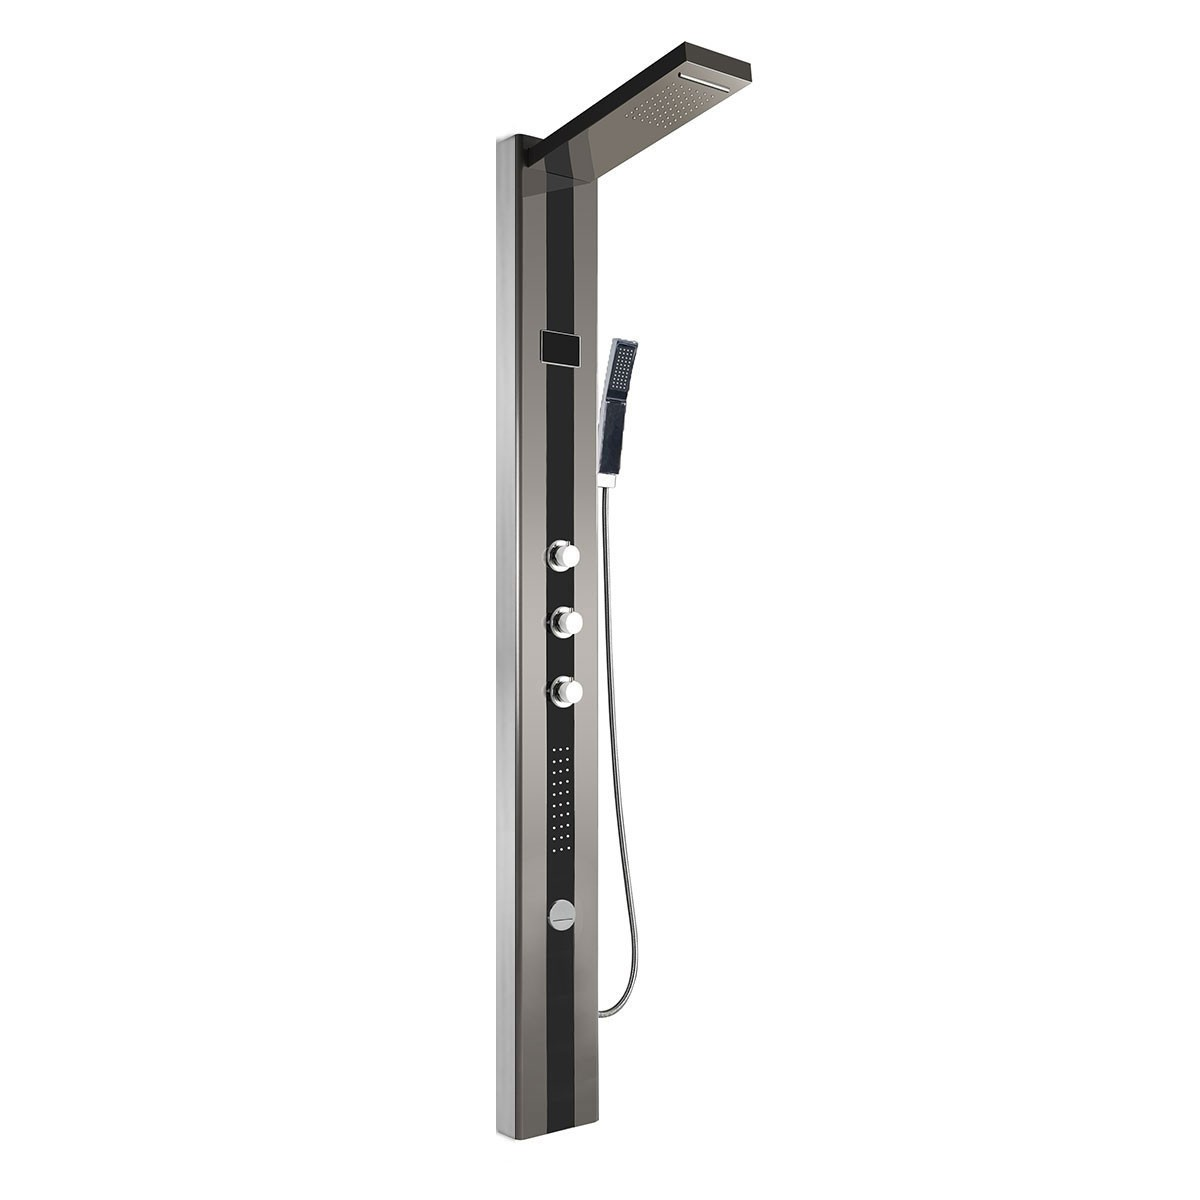 Black and Brushed Stainless Steel Thermostatic LED Shower Panel System (LYB-5530-SH)